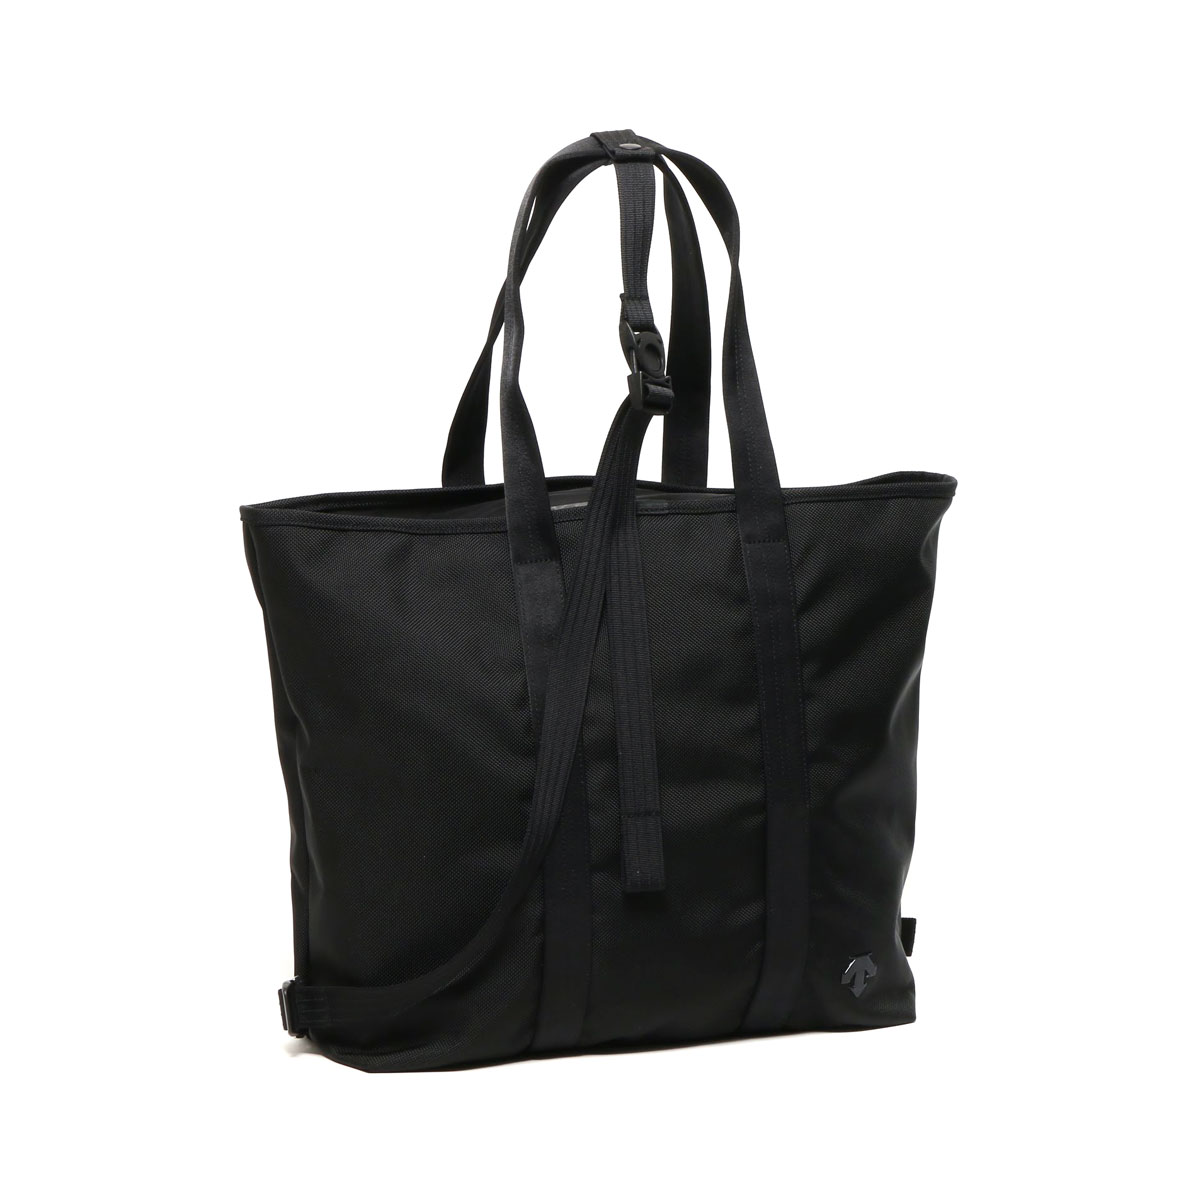 Descente Allterrain X Porter Waterproof Tote Bag Orr Terra In Black 18sp I